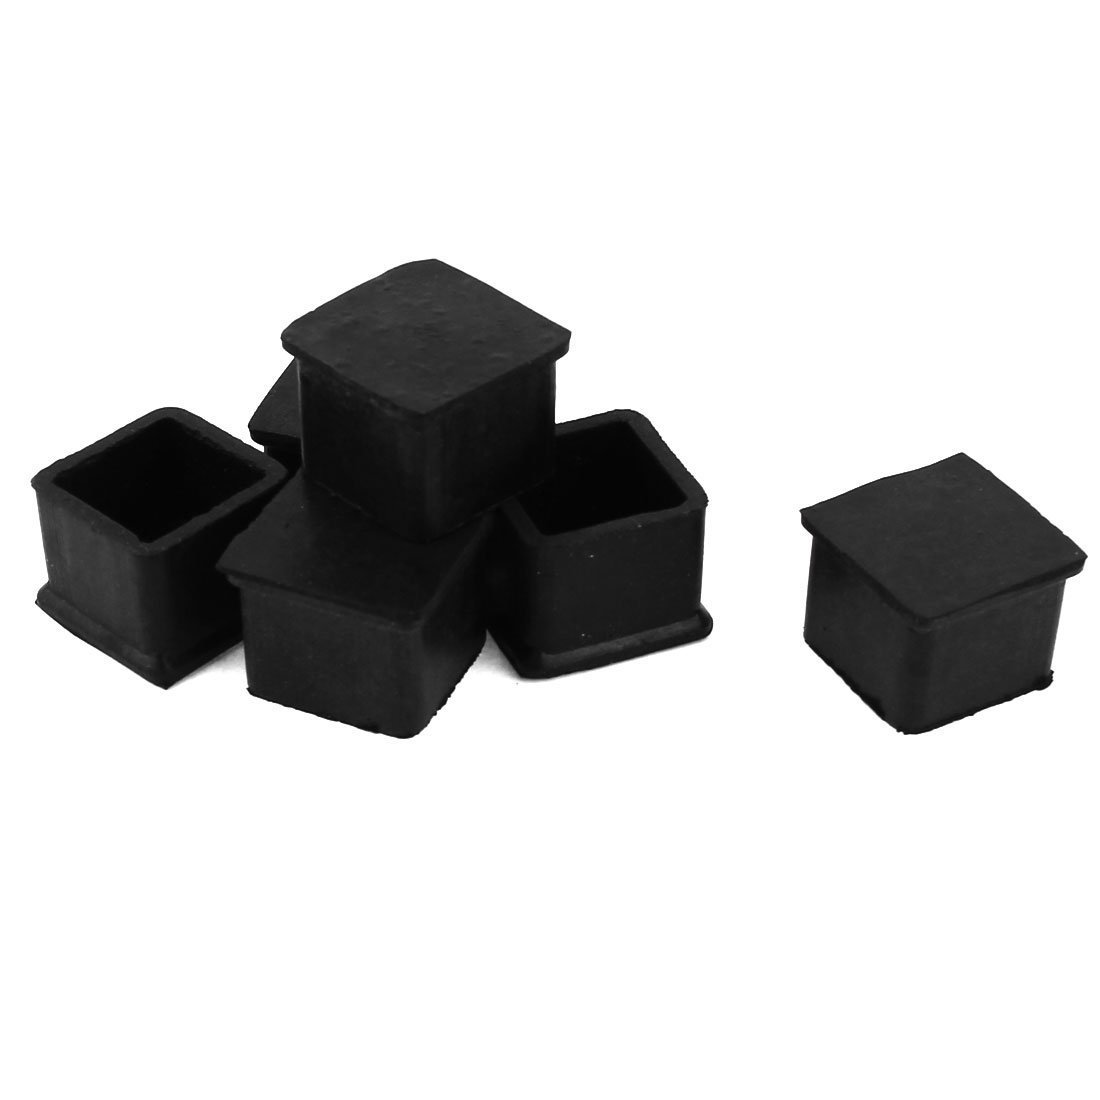 Rubber end caps furniture foot / floor protector, 25 mm x 25 mm, 6 pieces демпфирующий материал 1500 mm x 1000 mm x 25 mm 300 г м